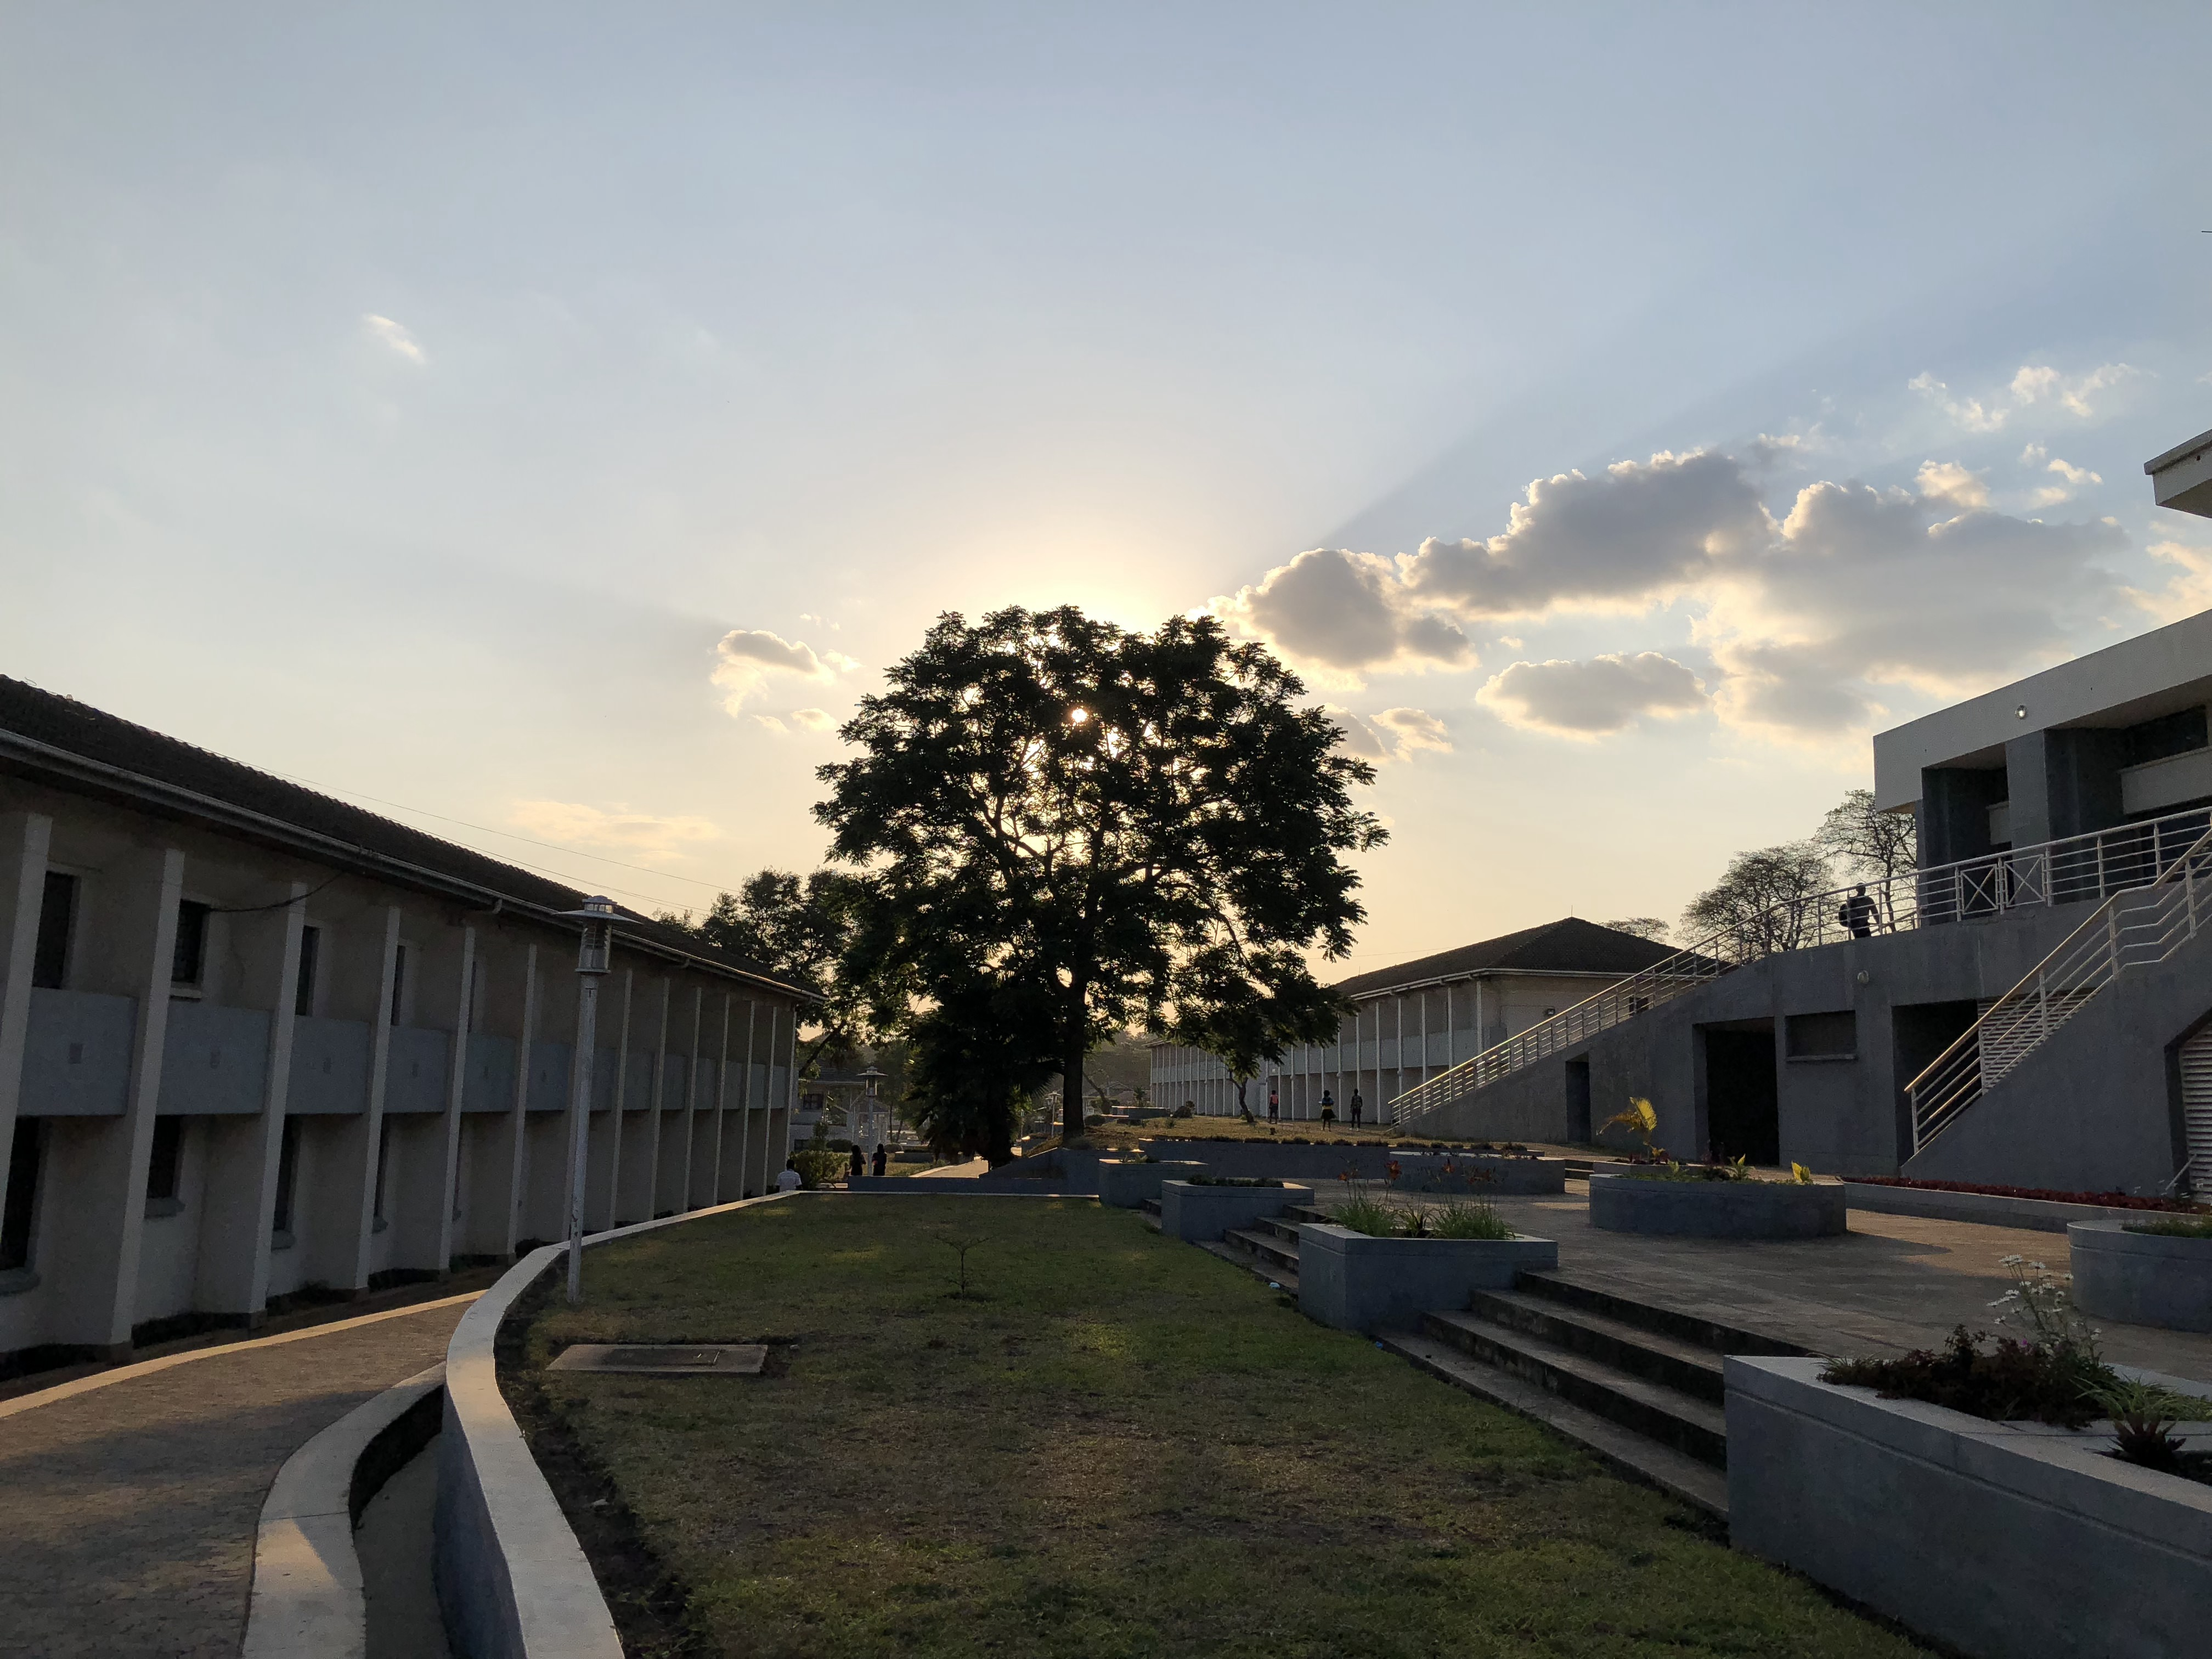 View of the College of Medicine Campus, Malawi.